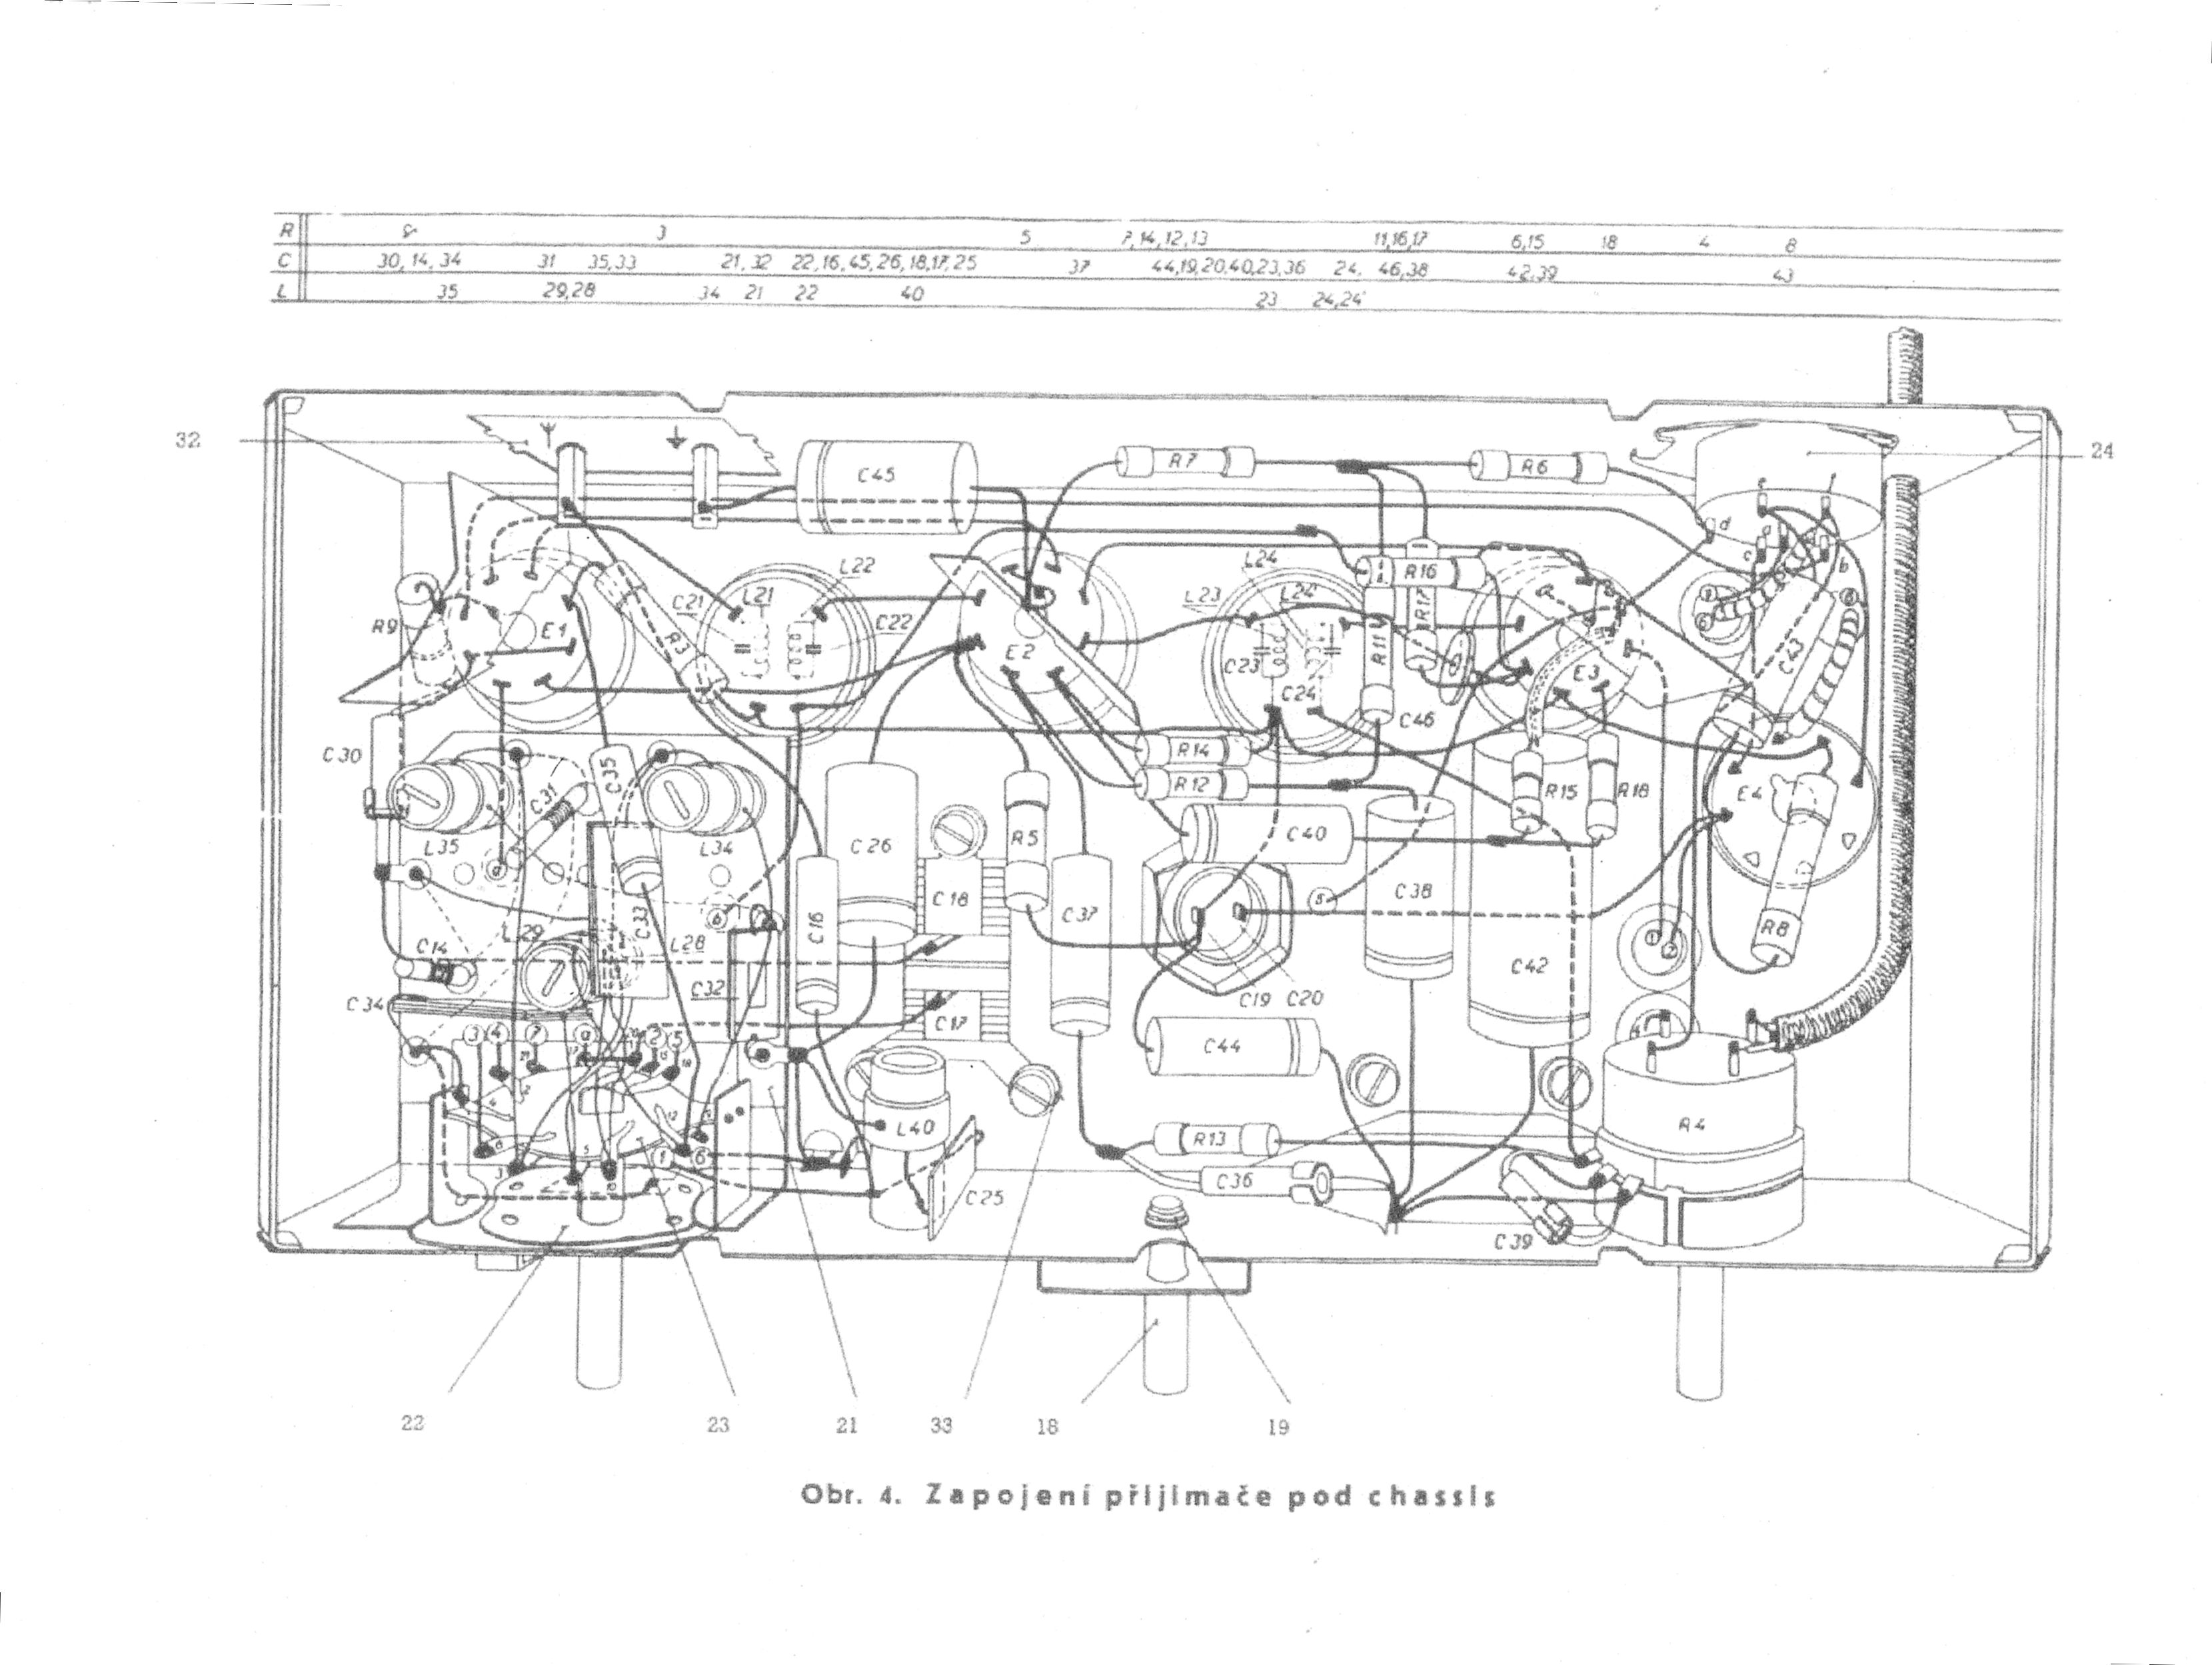 Outstanding Tesla Wiring Diagram Wiring Diagram G9 Wiring Digital Resources Indicompassionincorg